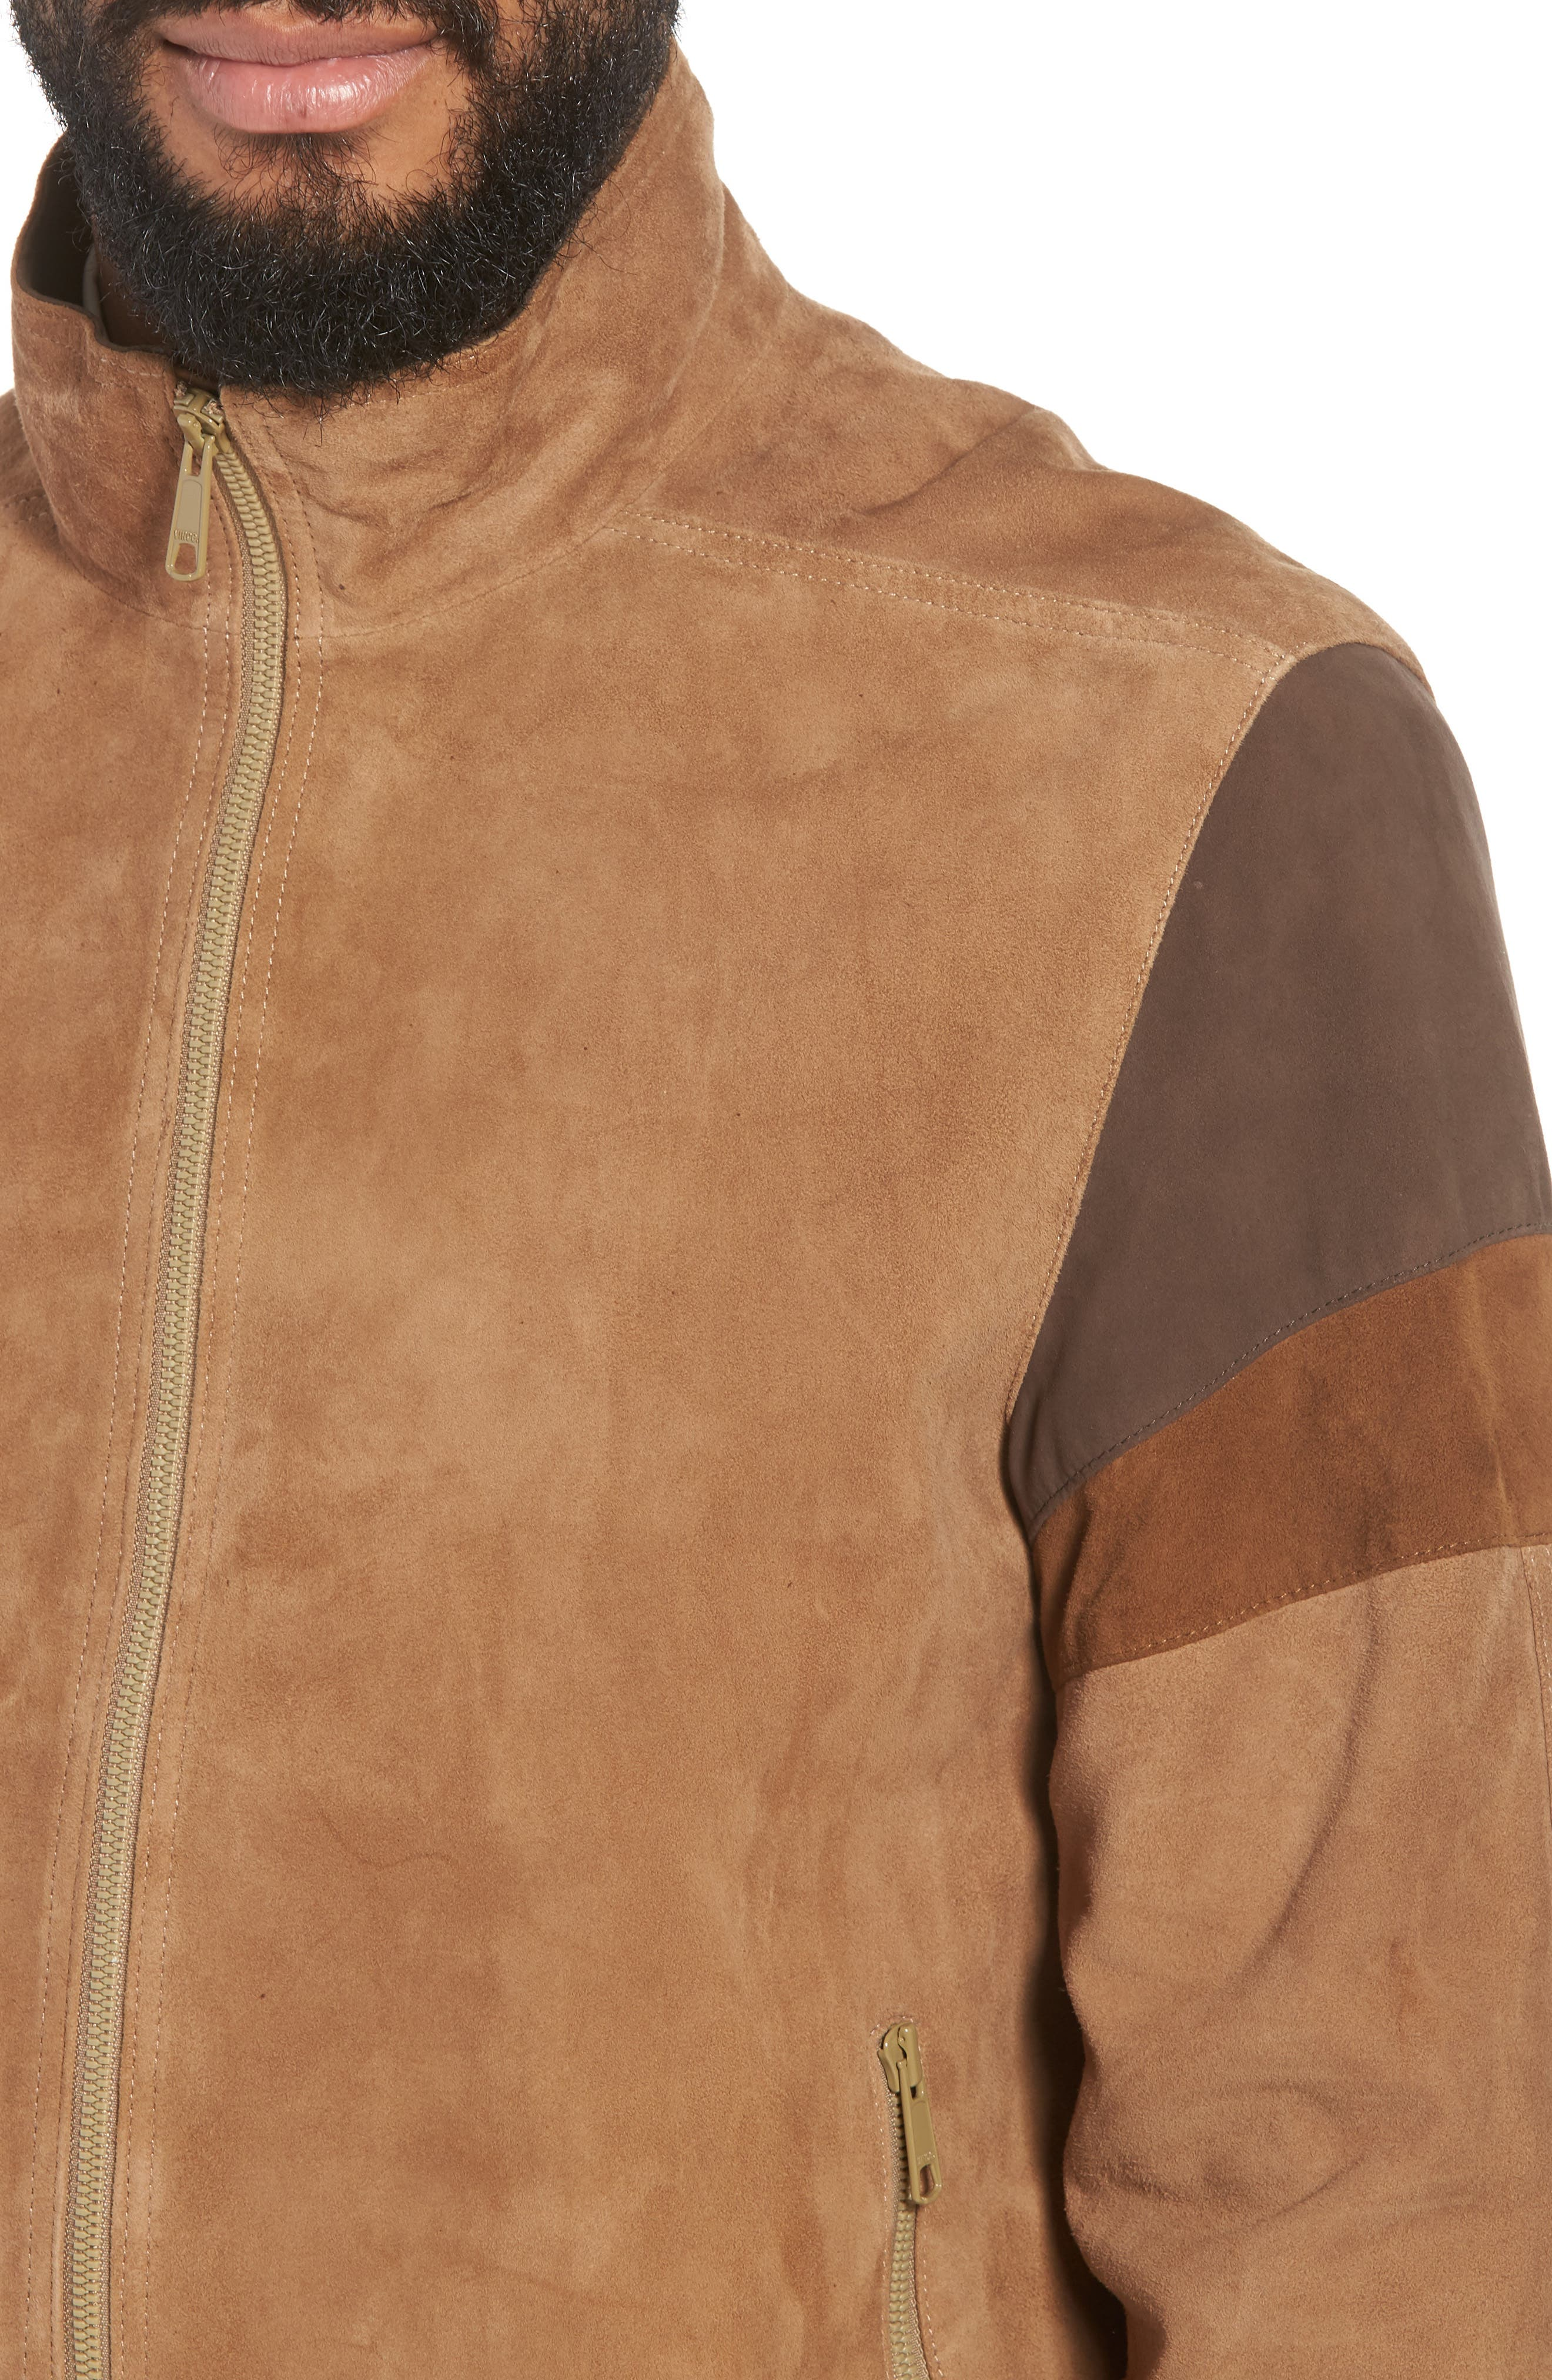 Colorblock Leather Track Jacket,                             Alternate thumbnail 4, color,                             250